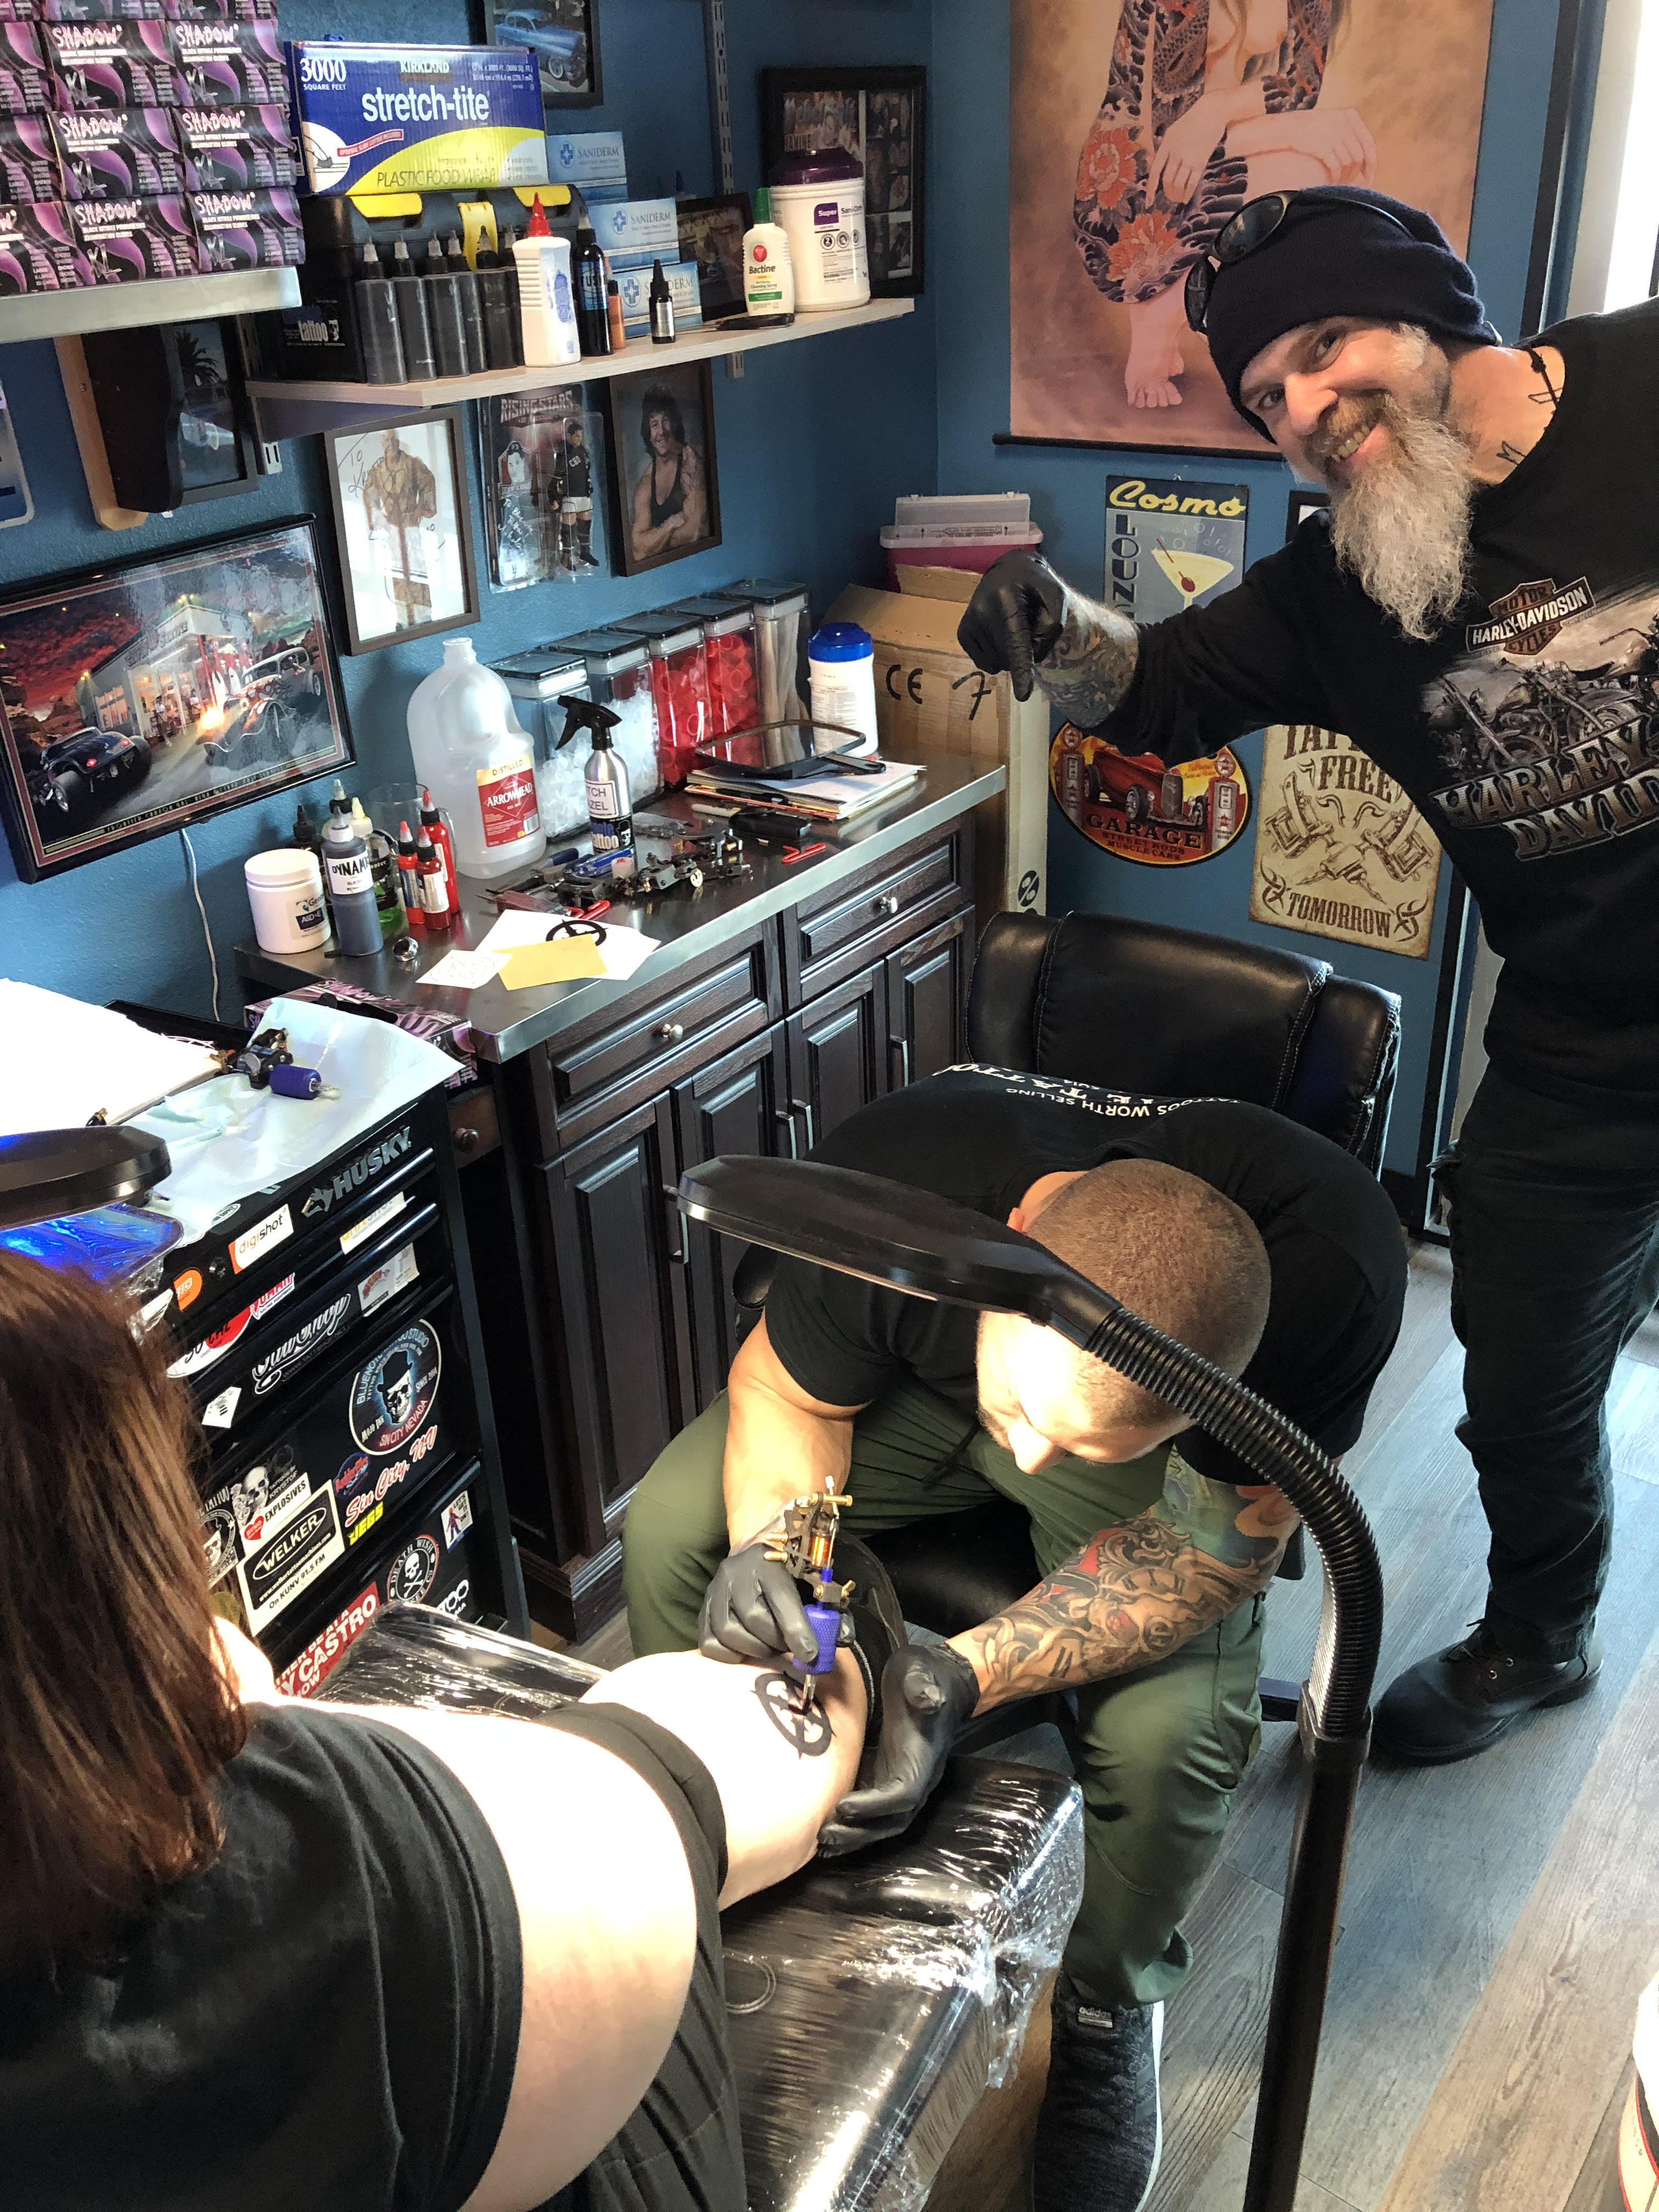 Krystof giving a Lesson in Tattooing